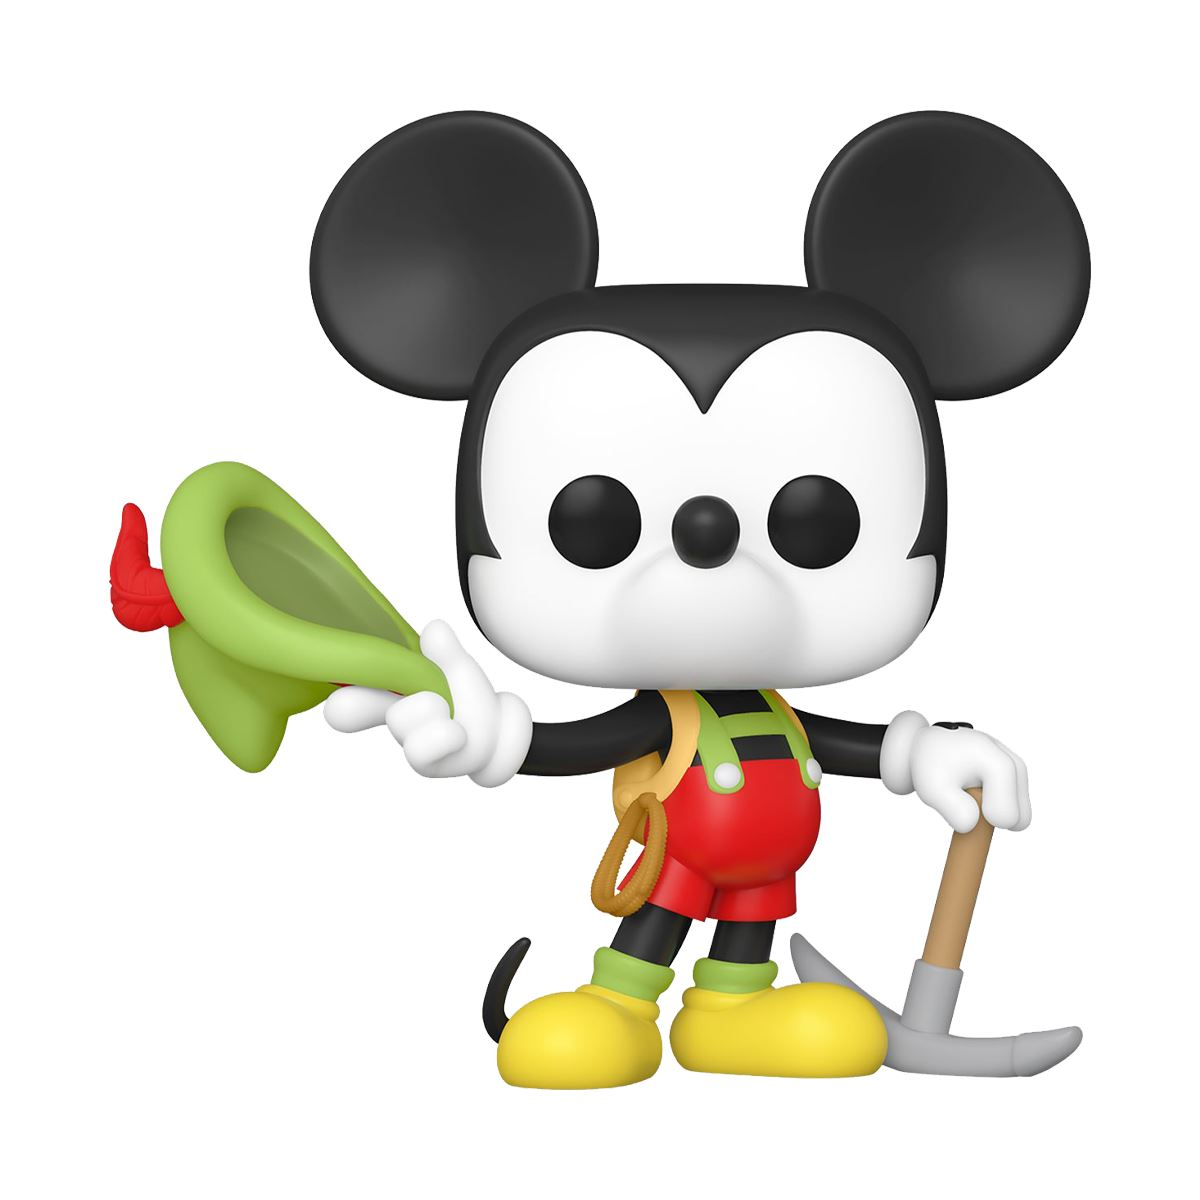 Mickey Mouse in Lederhosen Disneyland 65th Anniversary Funko Pop! Disney [PRE-ORDER] Pop! Funko